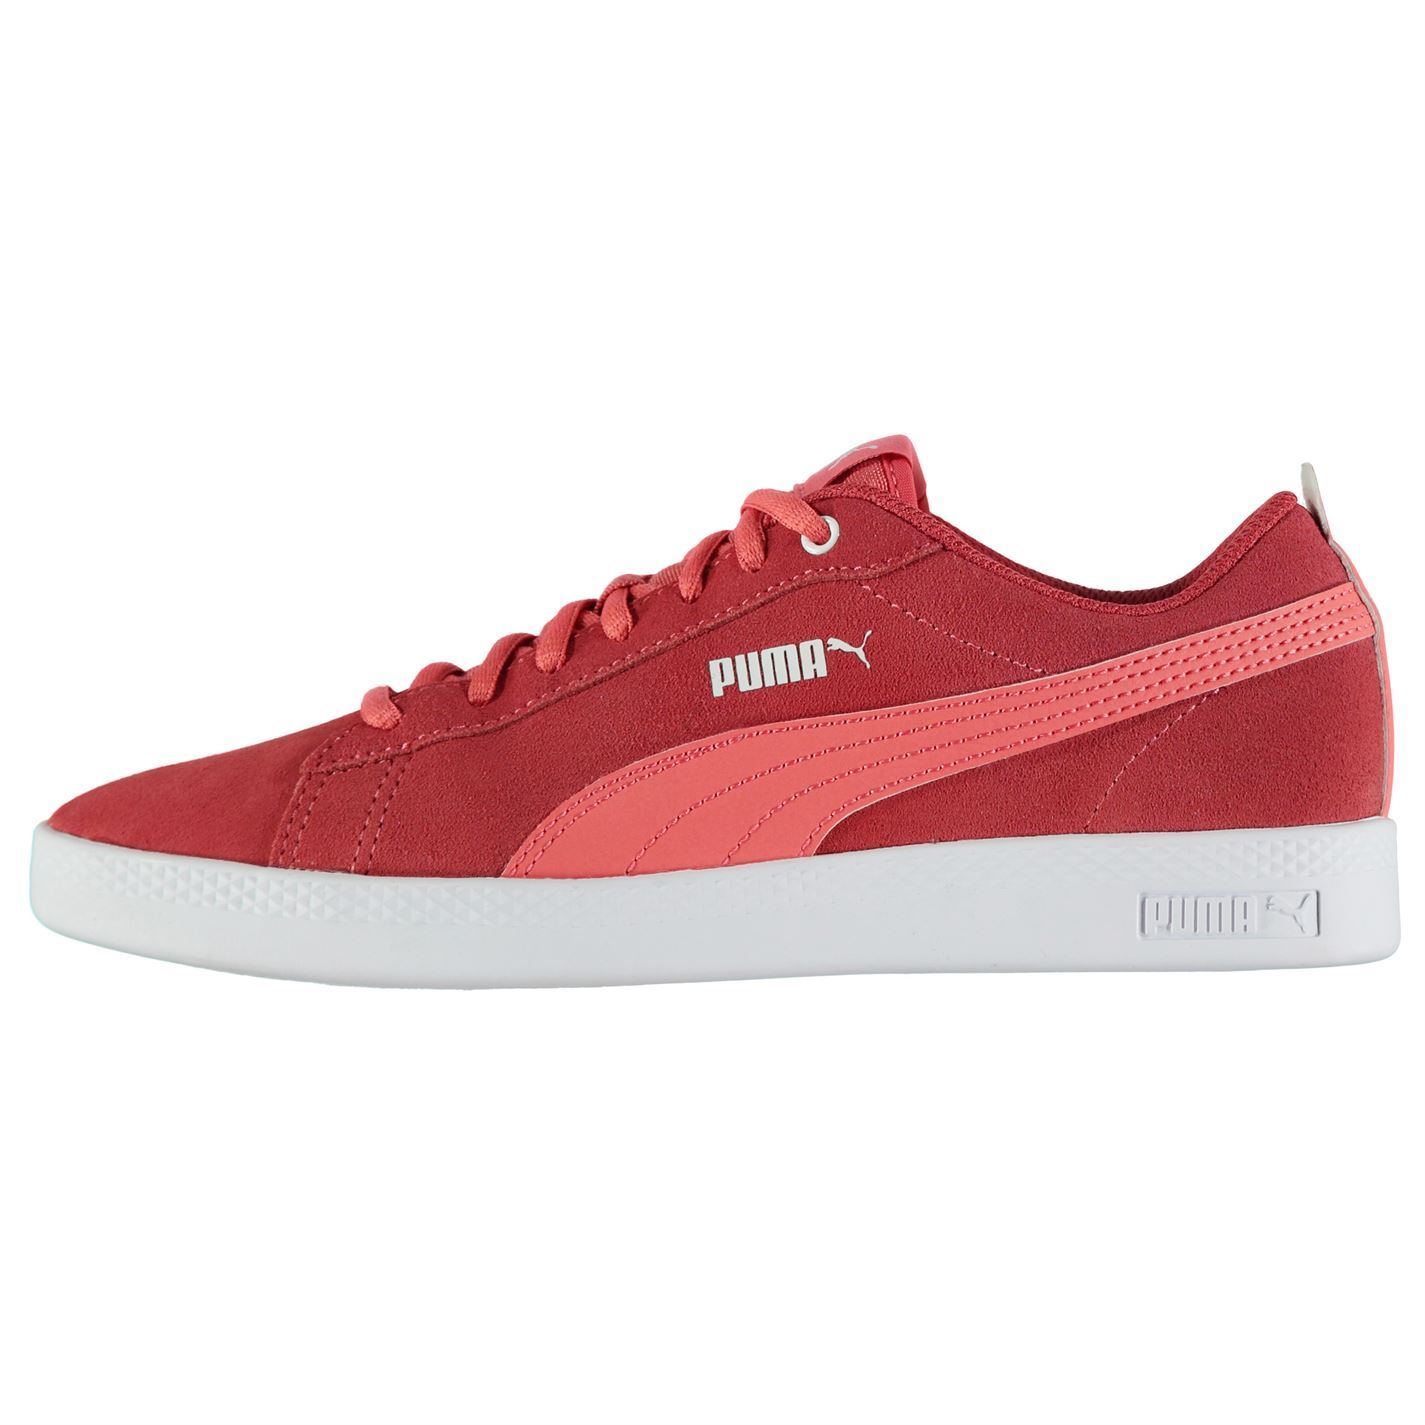 cddf8e530fac1f ... Puma Smash Suede Trainers Womens Red Sports Trainers Sneakers ...